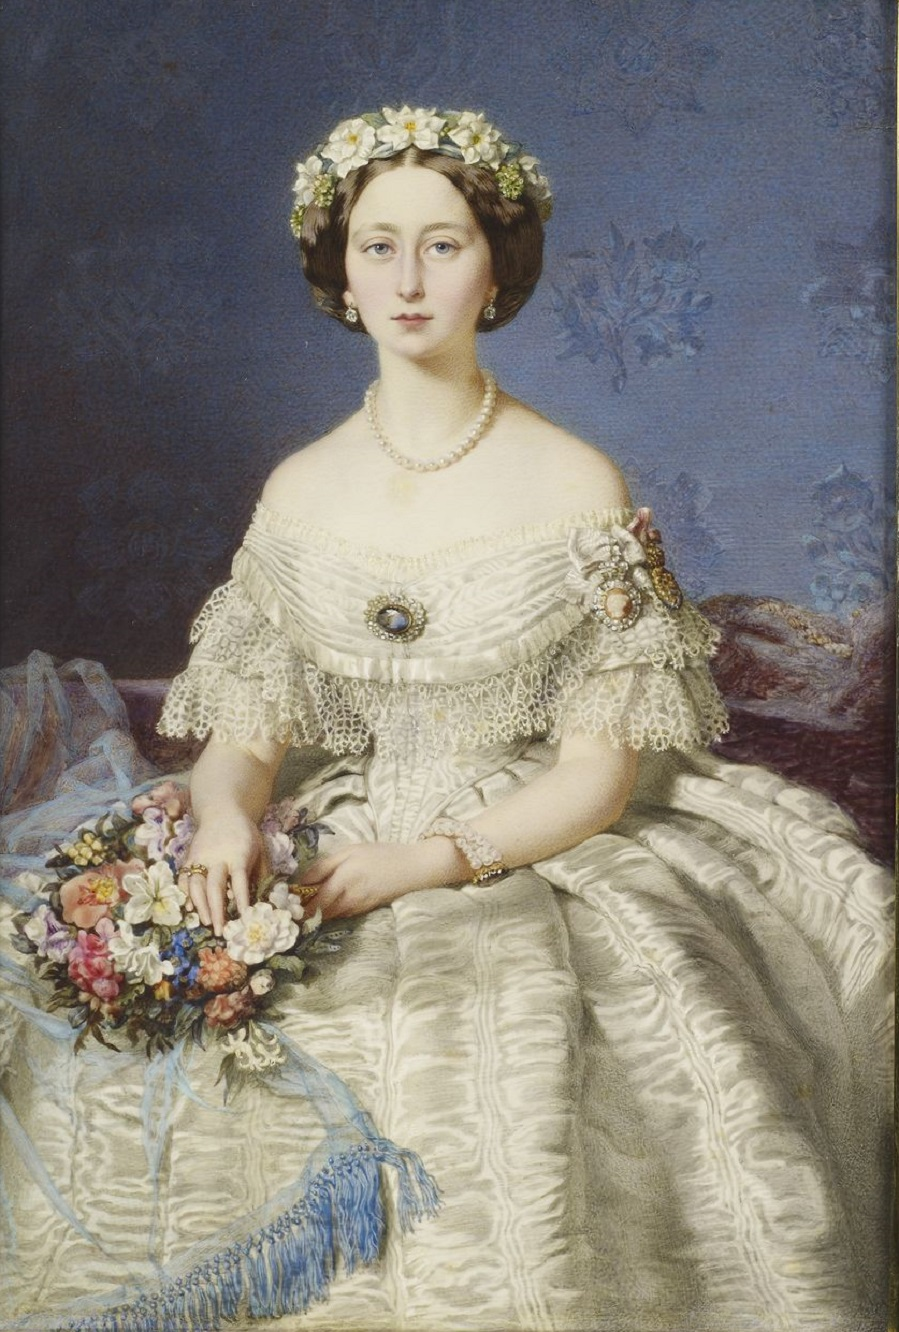 Princess-Alice-by-Eduardo-de-Moira-1860.jpg